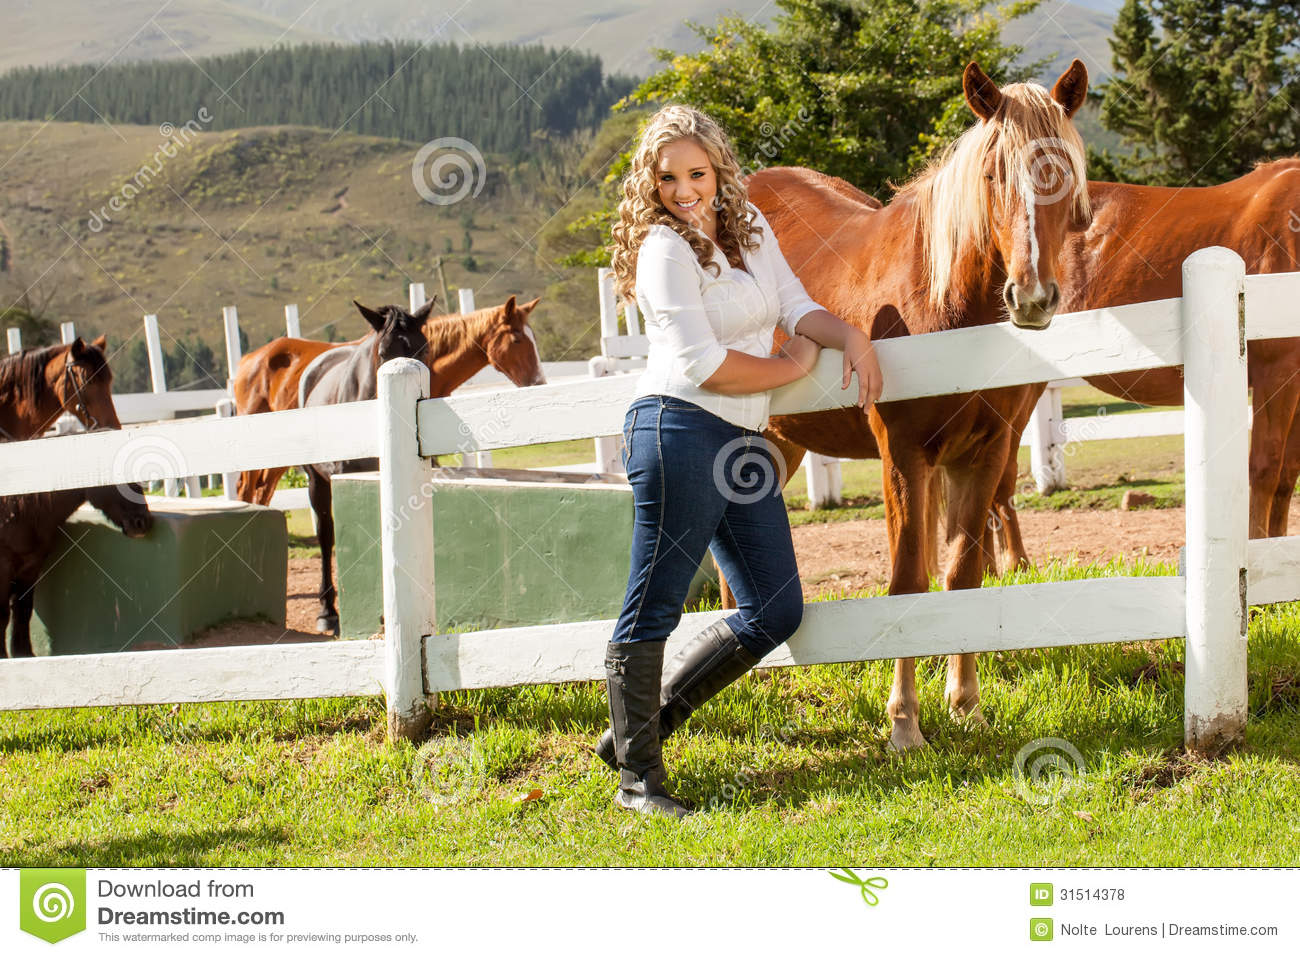 ... white picket fence with a mahongany colored horse equally interested